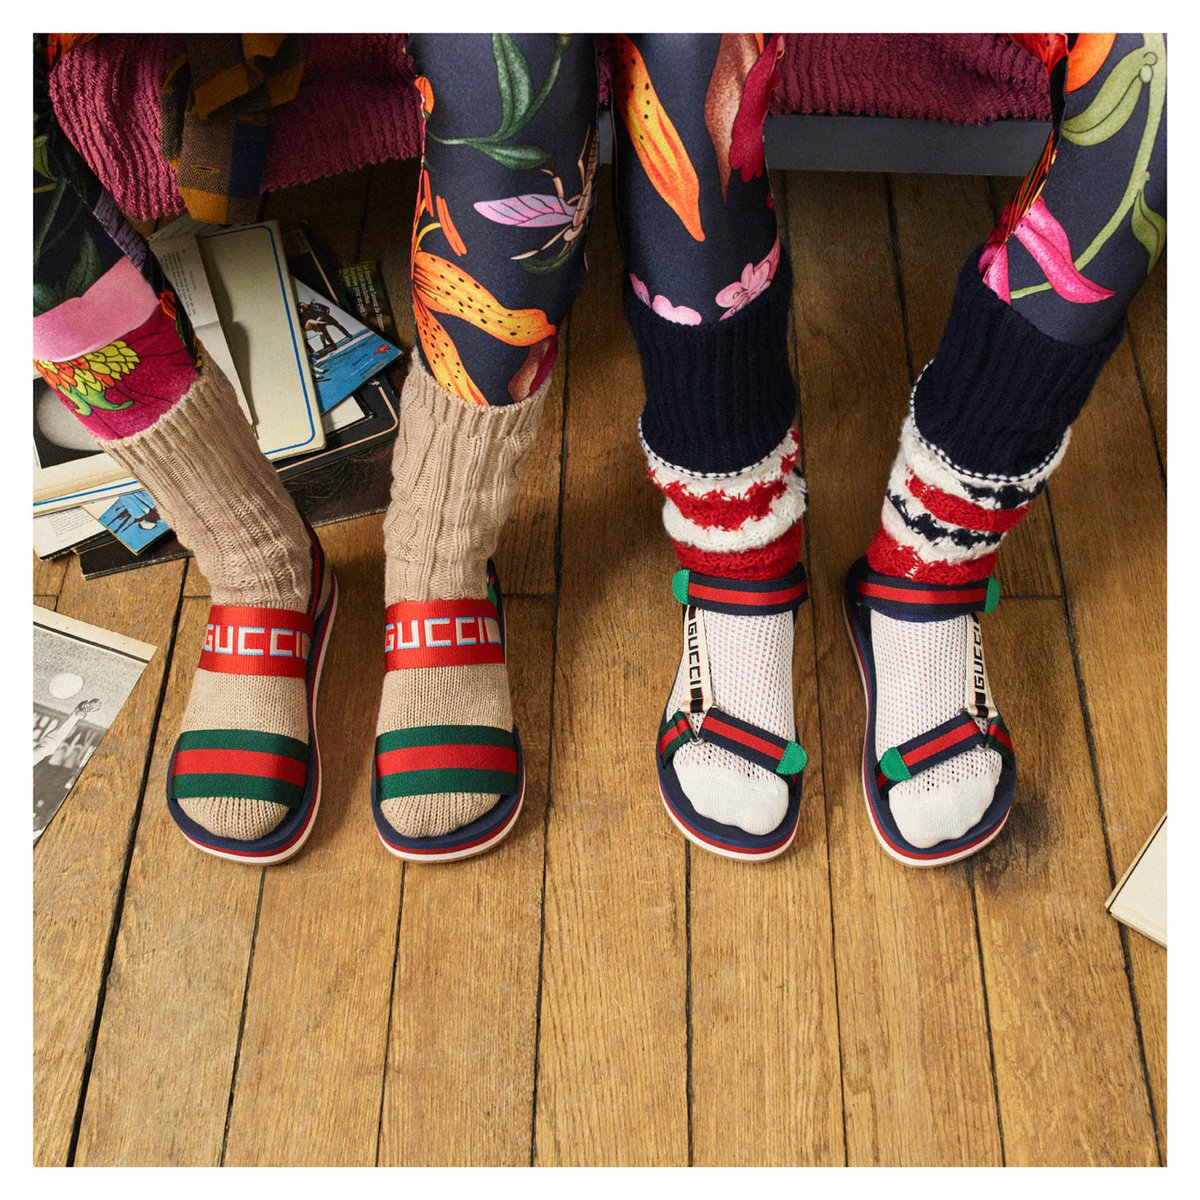 3bbee8d283b89 ... detail worn with floral printed stretch jersey leggings and wool socks.  Discover more http://on.gucci.com/_DansLesRues .pic.twitter.com/iXD1pa5YmF